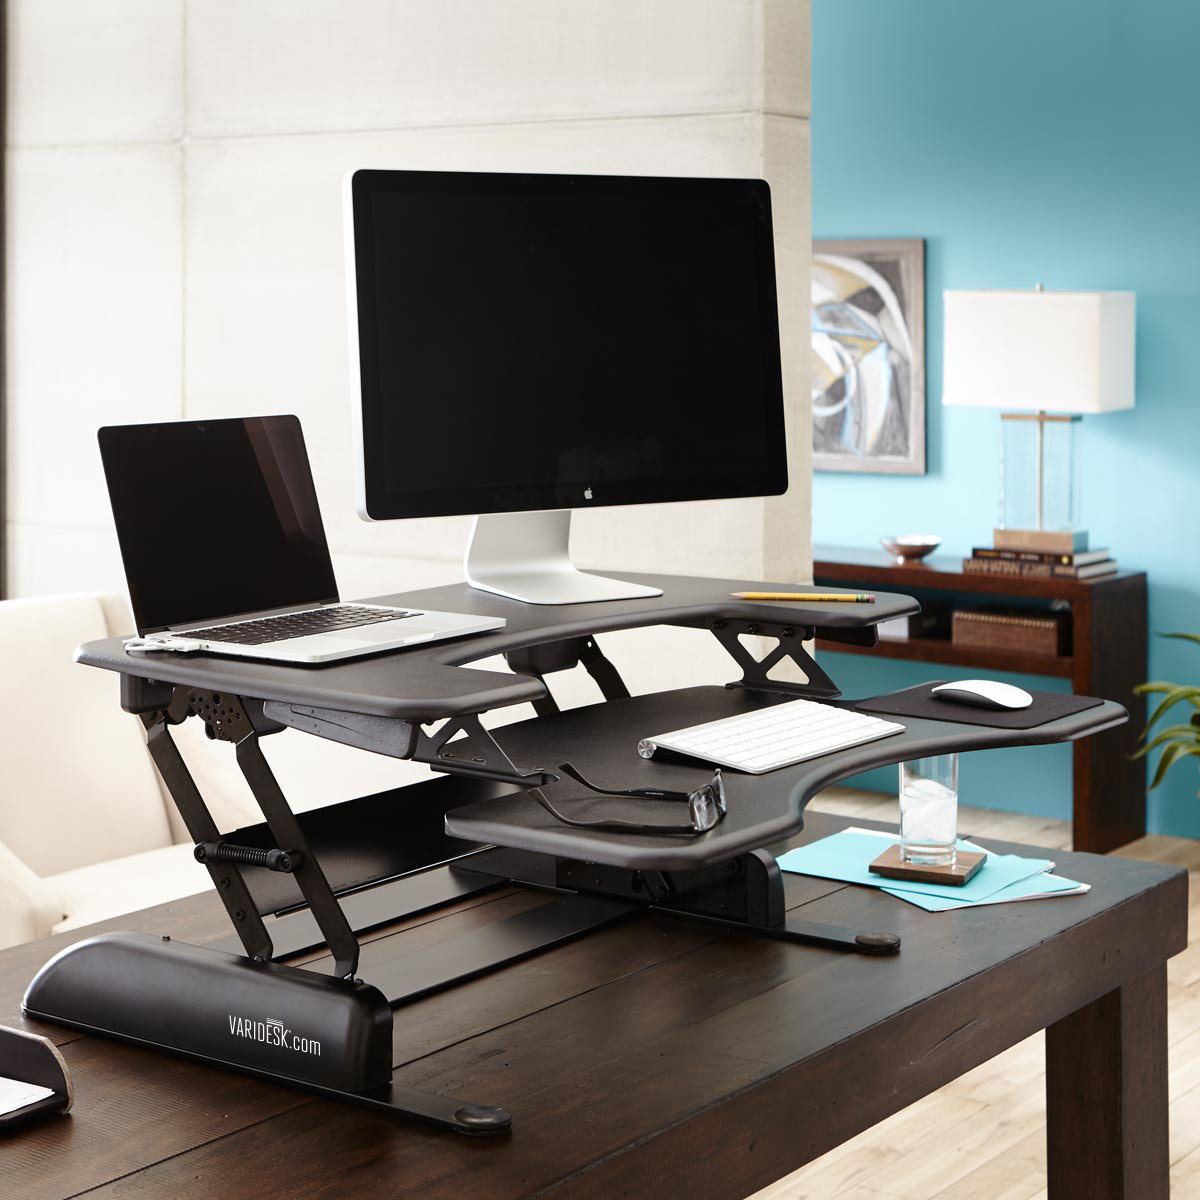 Don't Take Work Sitting Down. Get on Your Feet with a Standing Desk.